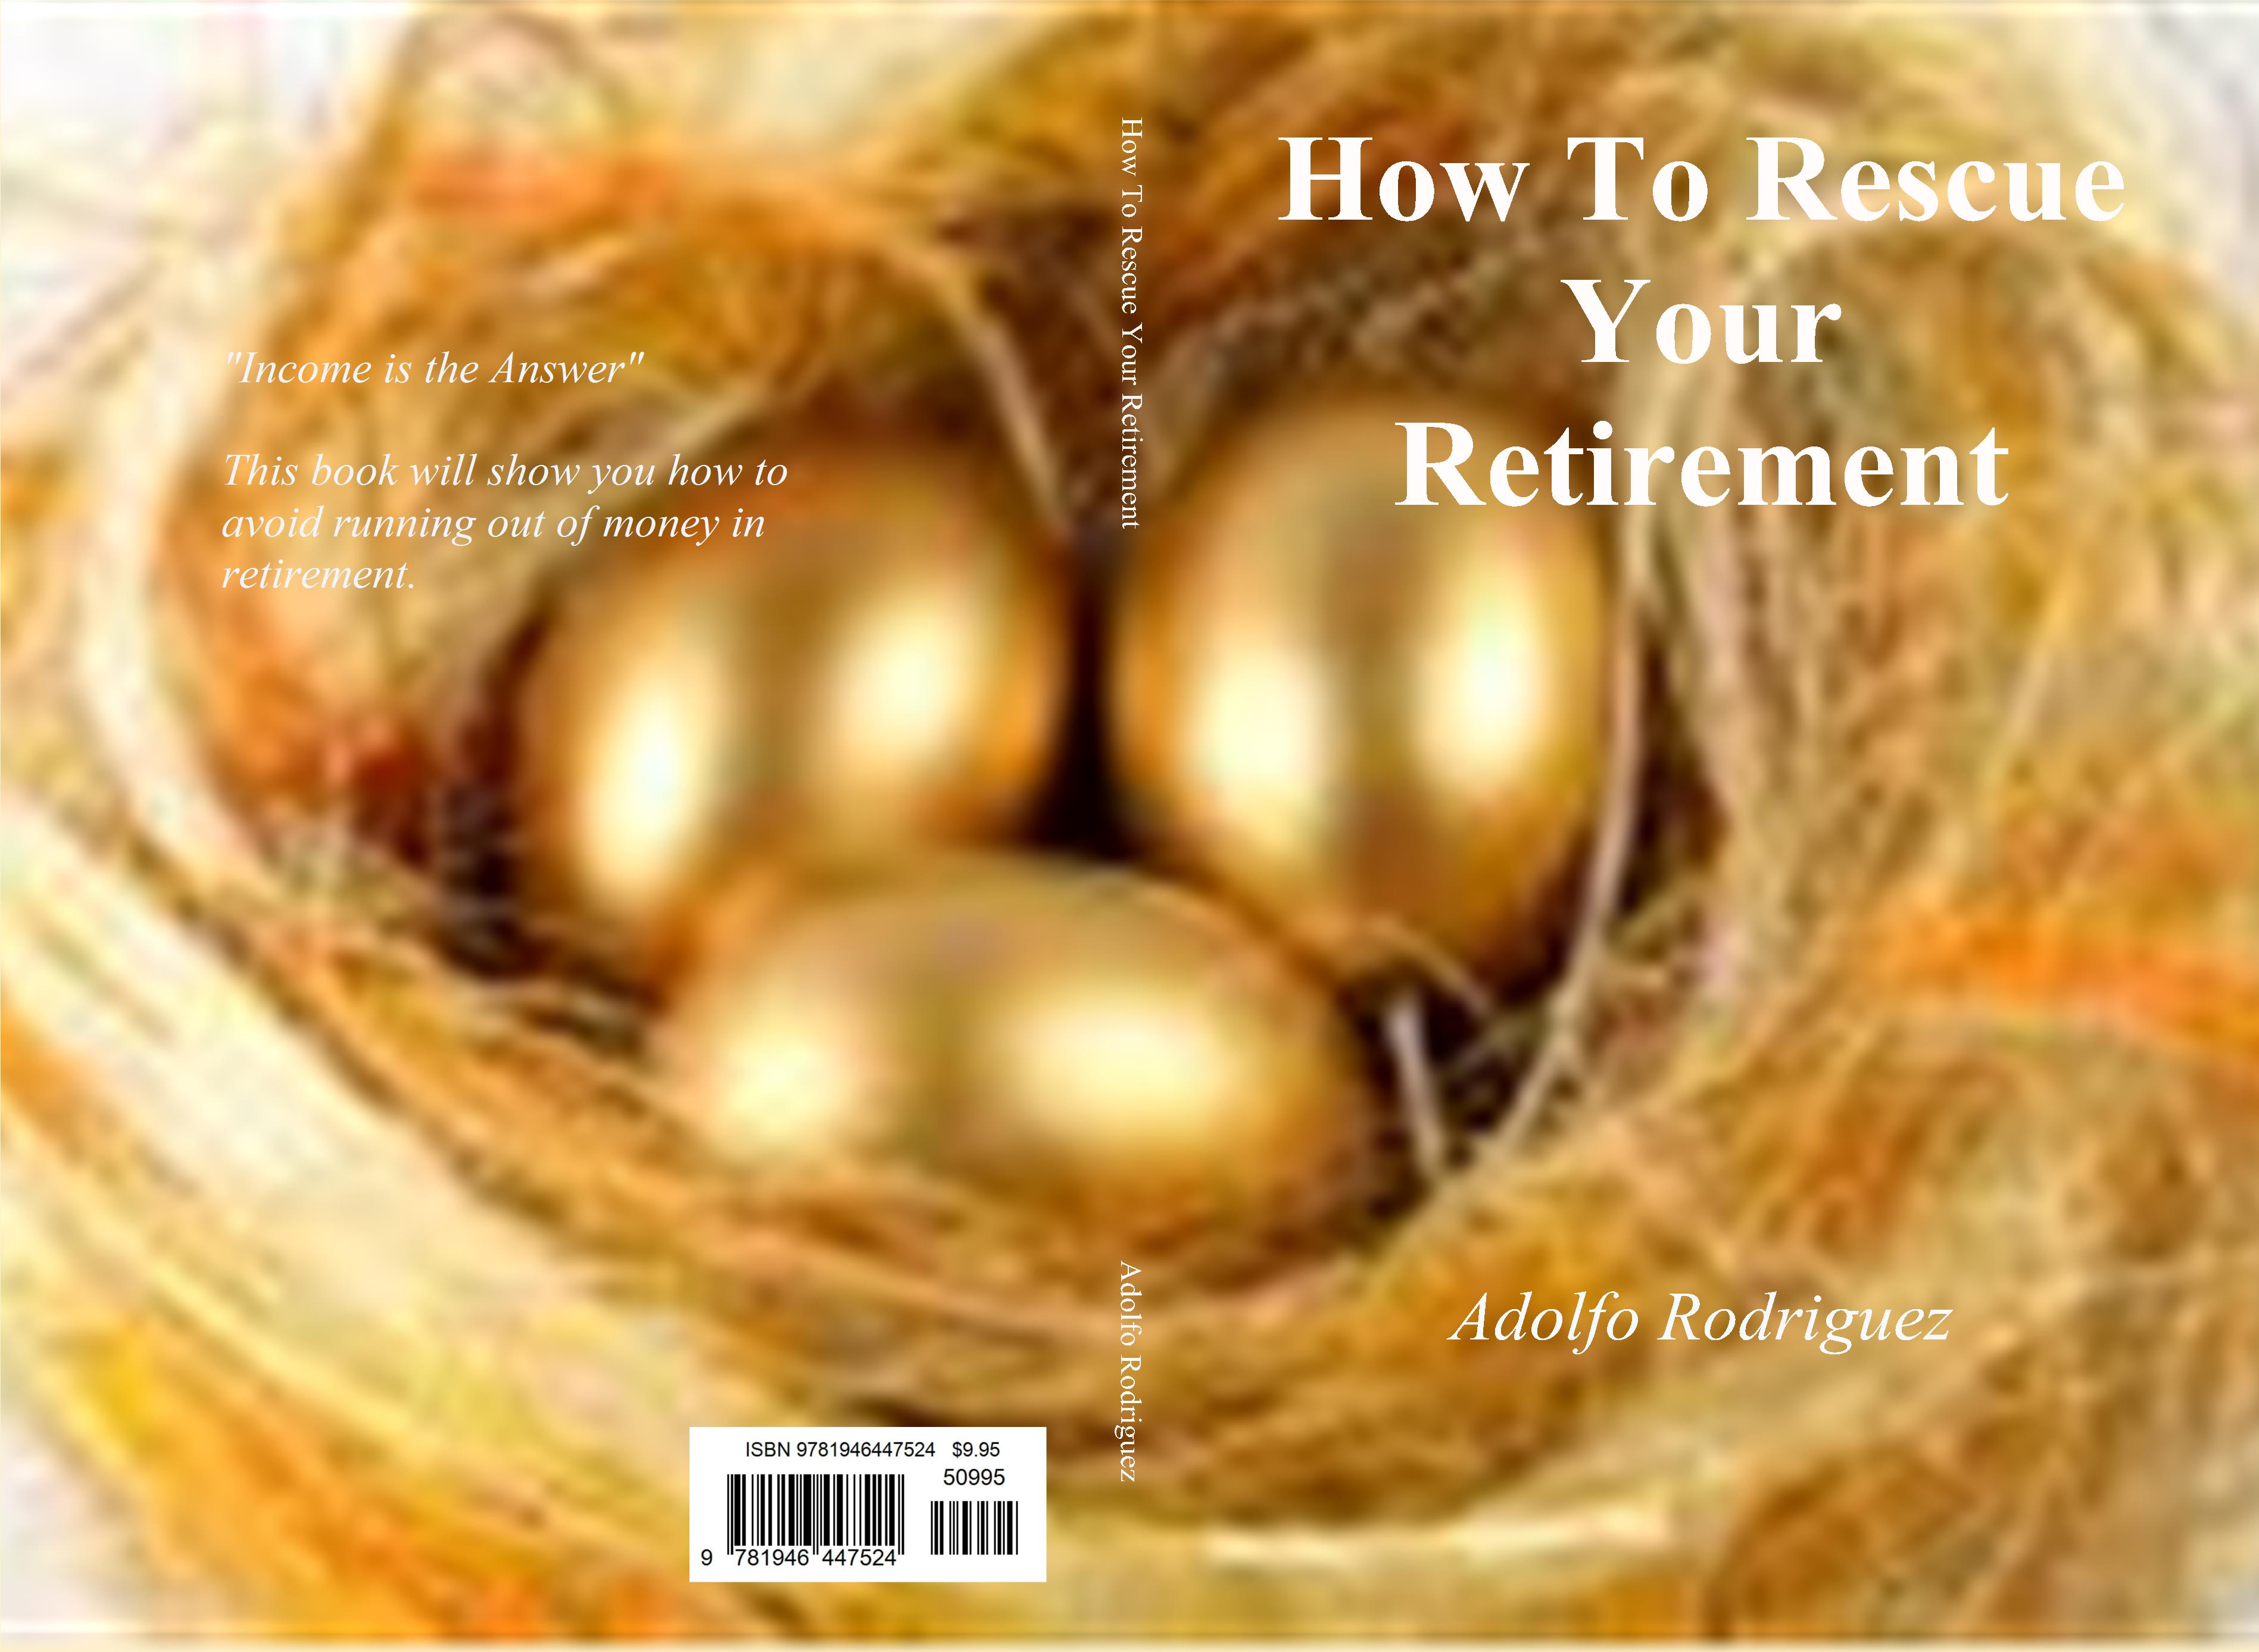 How To Rescue Your Retirement cover image